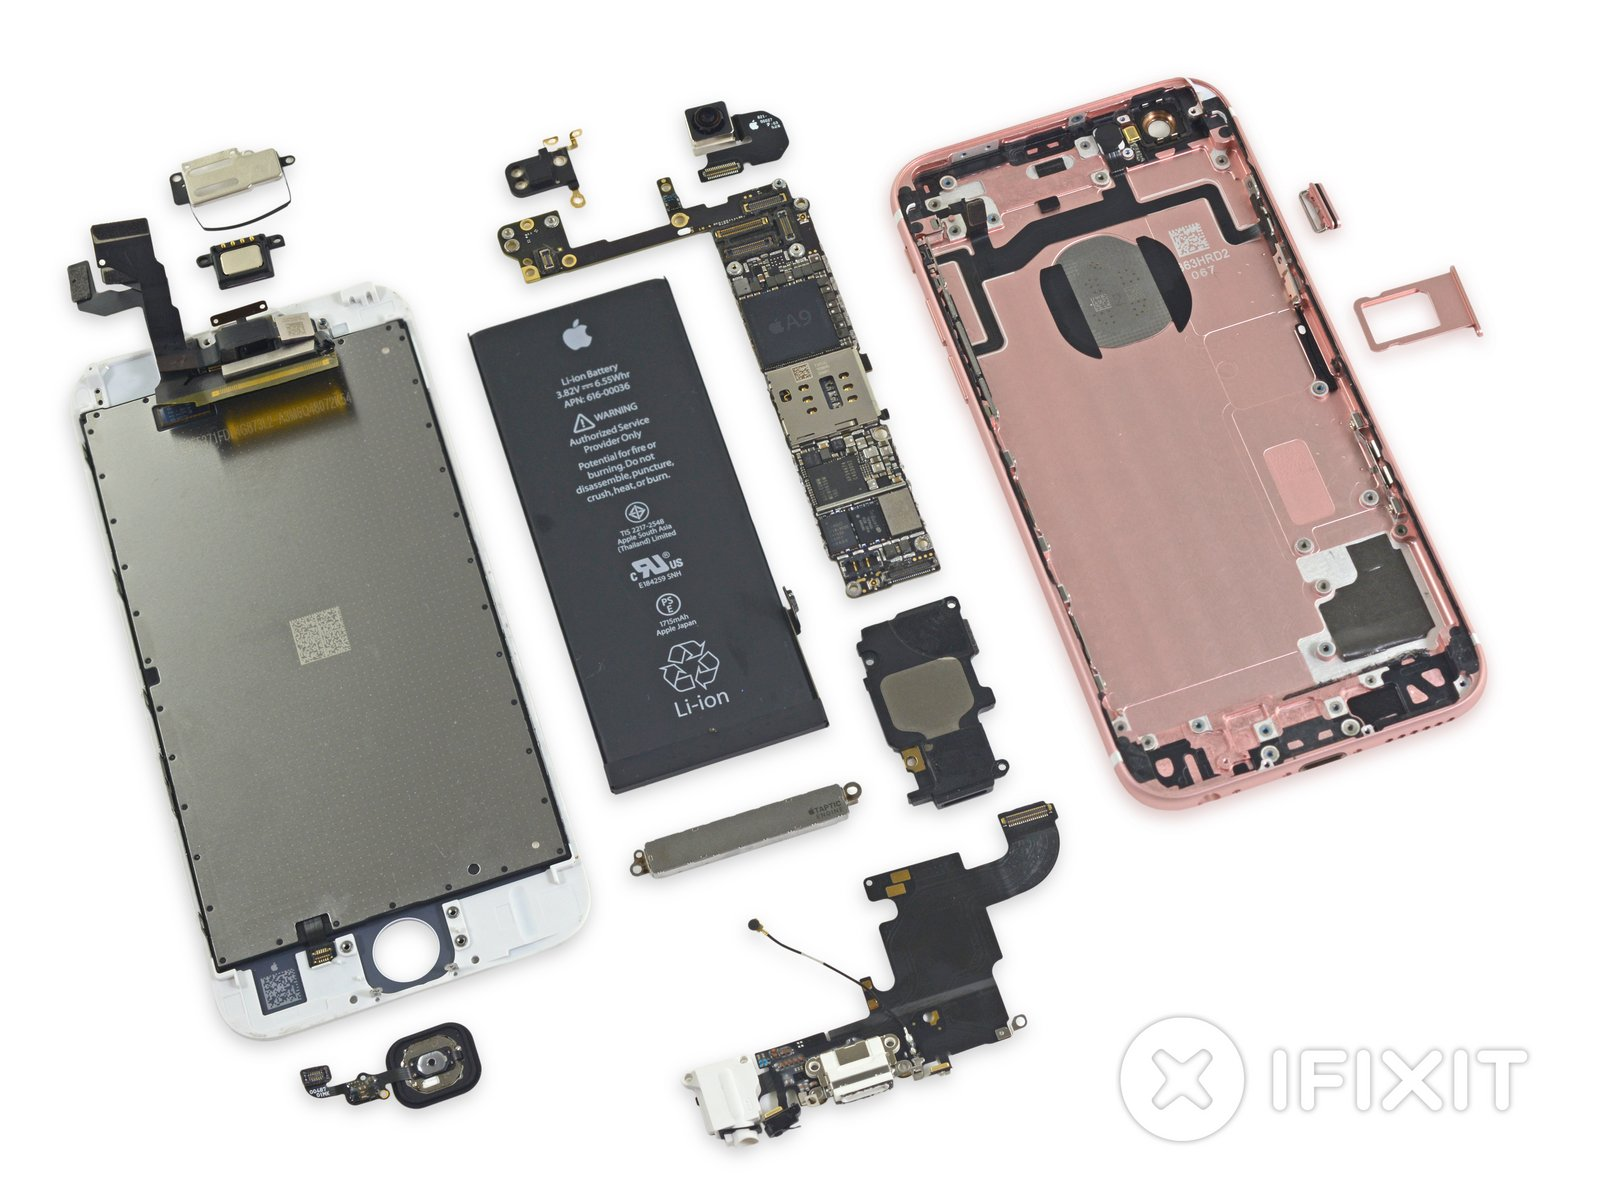 Iphone 6s teardown ifixit ccuart Images